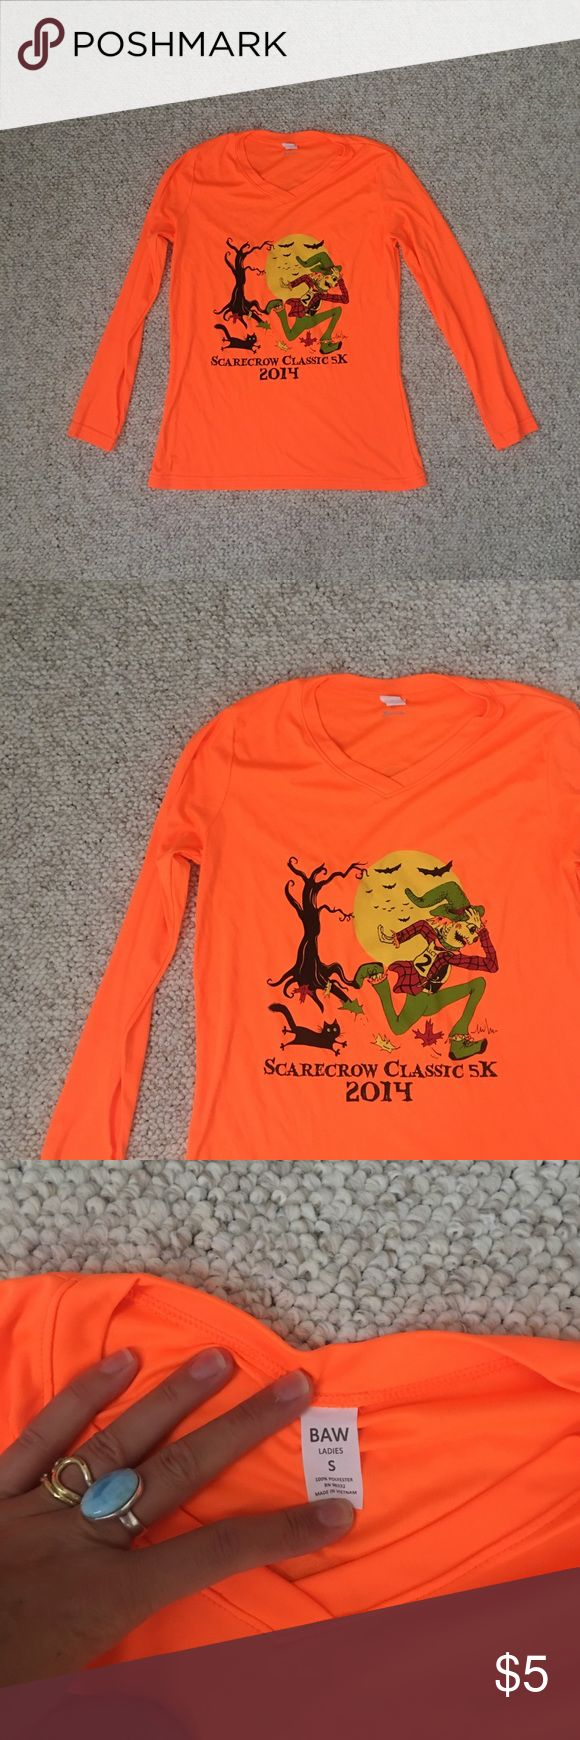 Scarecrow classic work out top NWOT never worn fluorescent orange fitted ladies S running / exersize top from the Lincoln Ma Halloween race Tops Tees - Long Sleeve